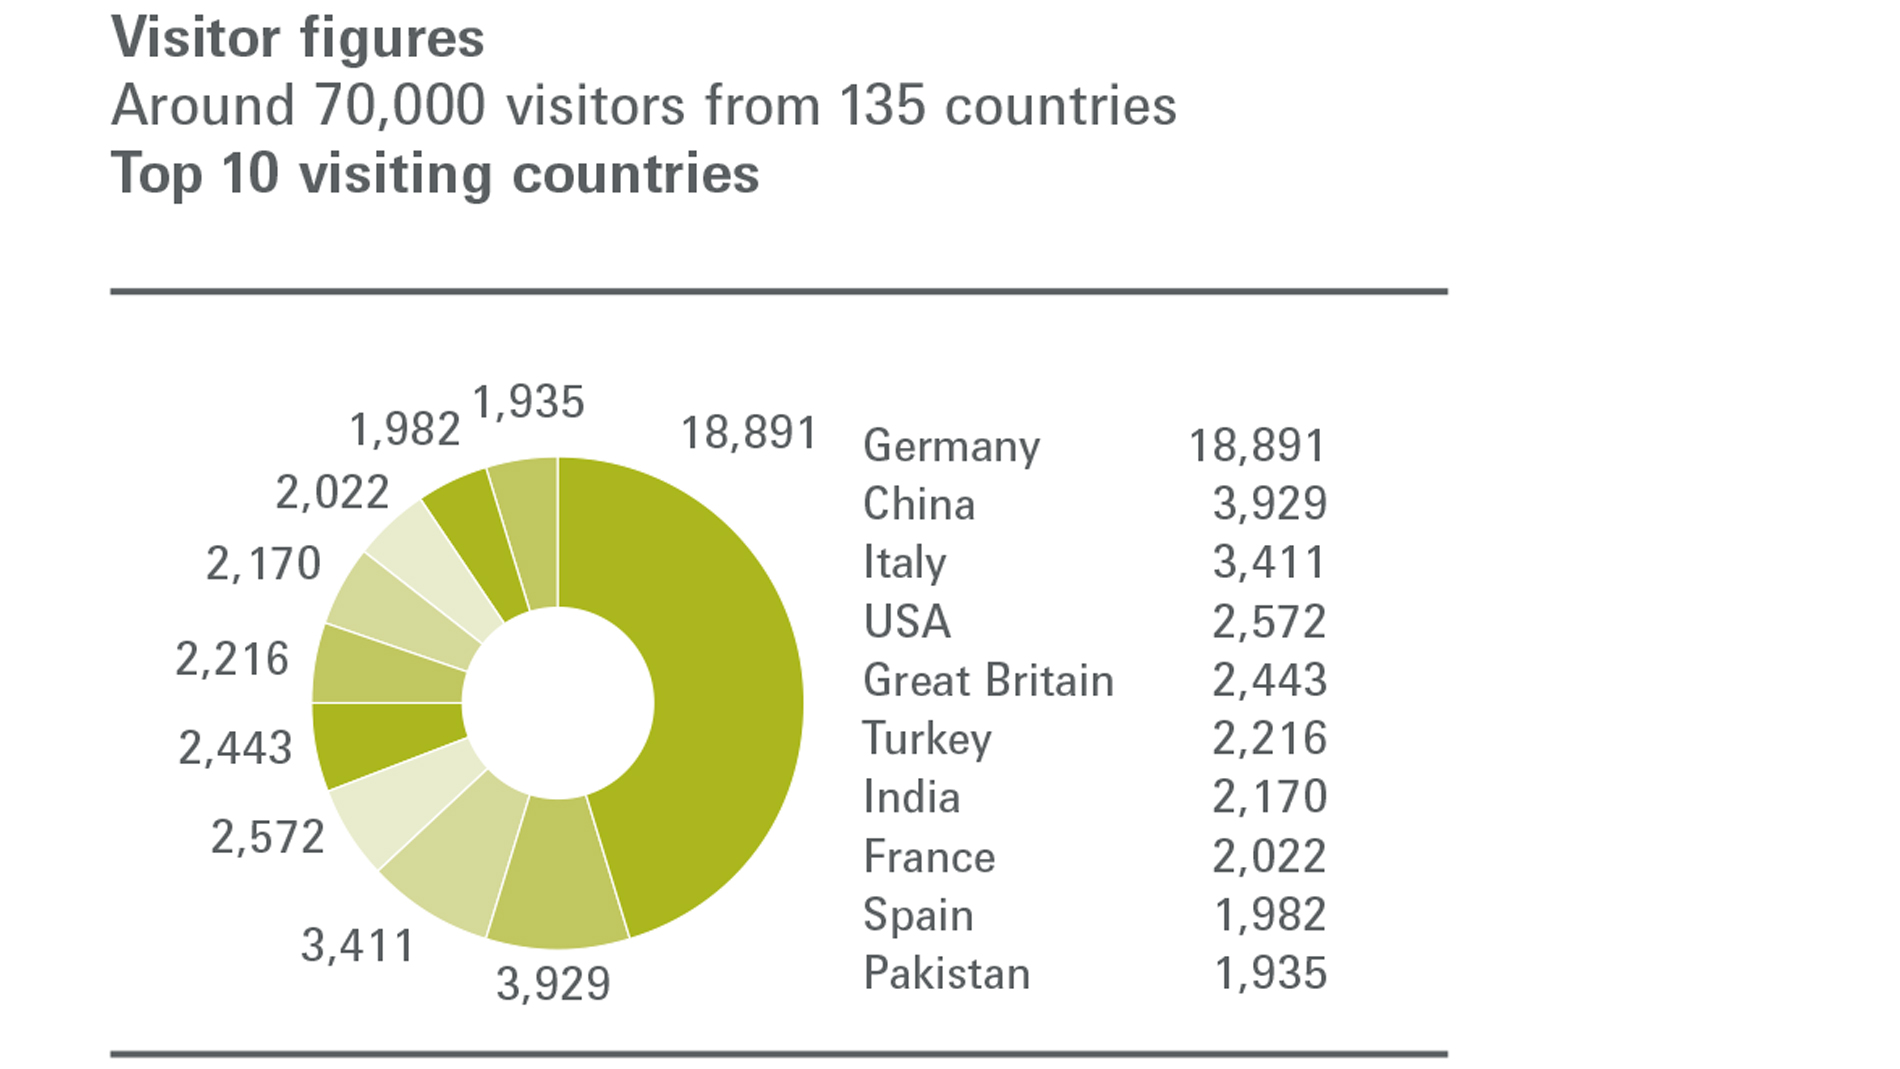 Visitors figures